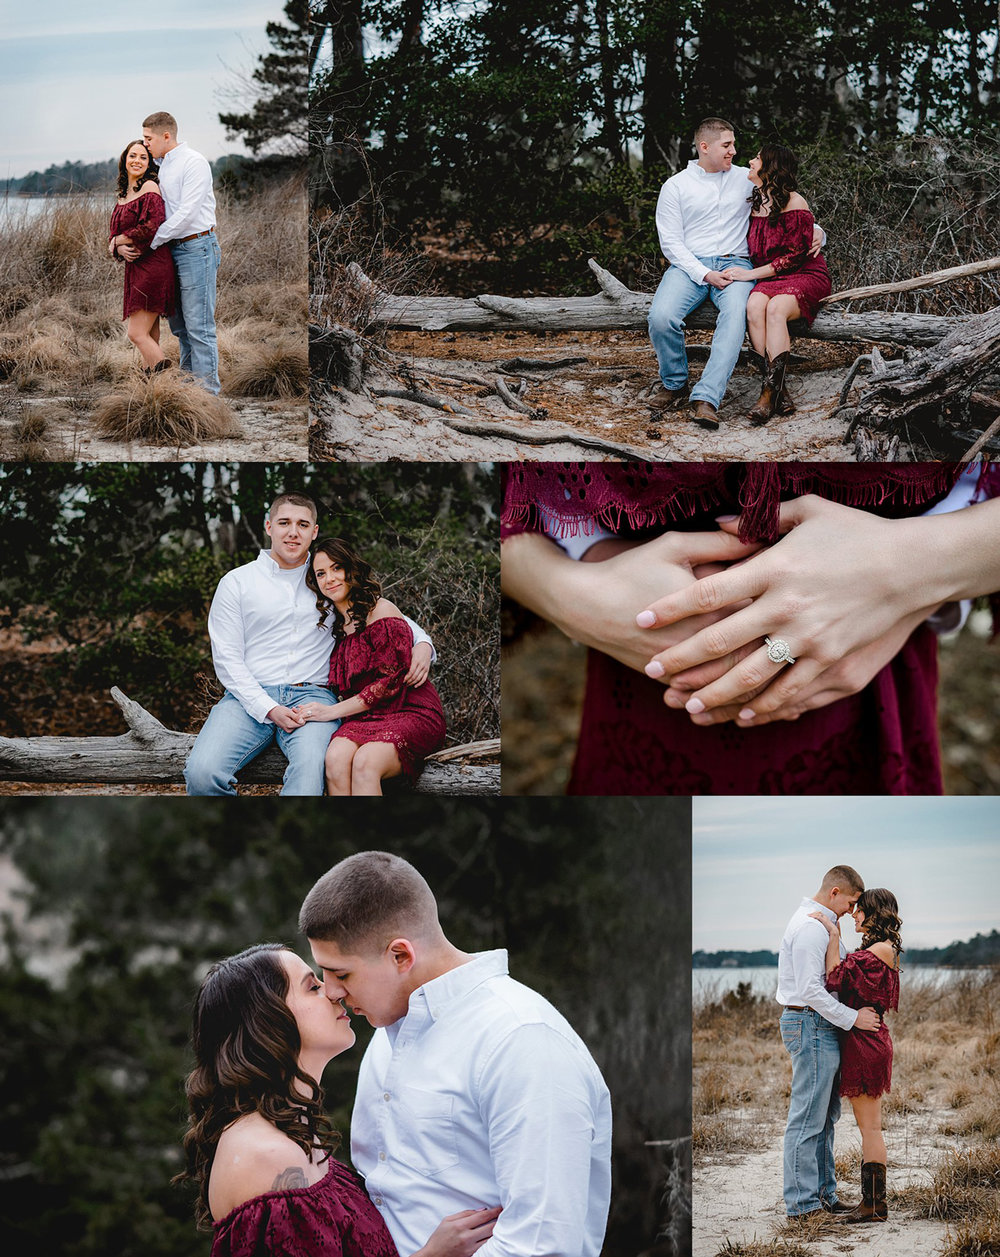 creative-intimate-engagement-photos-in-virginia-beach-melissa-bliss-photography.jpg